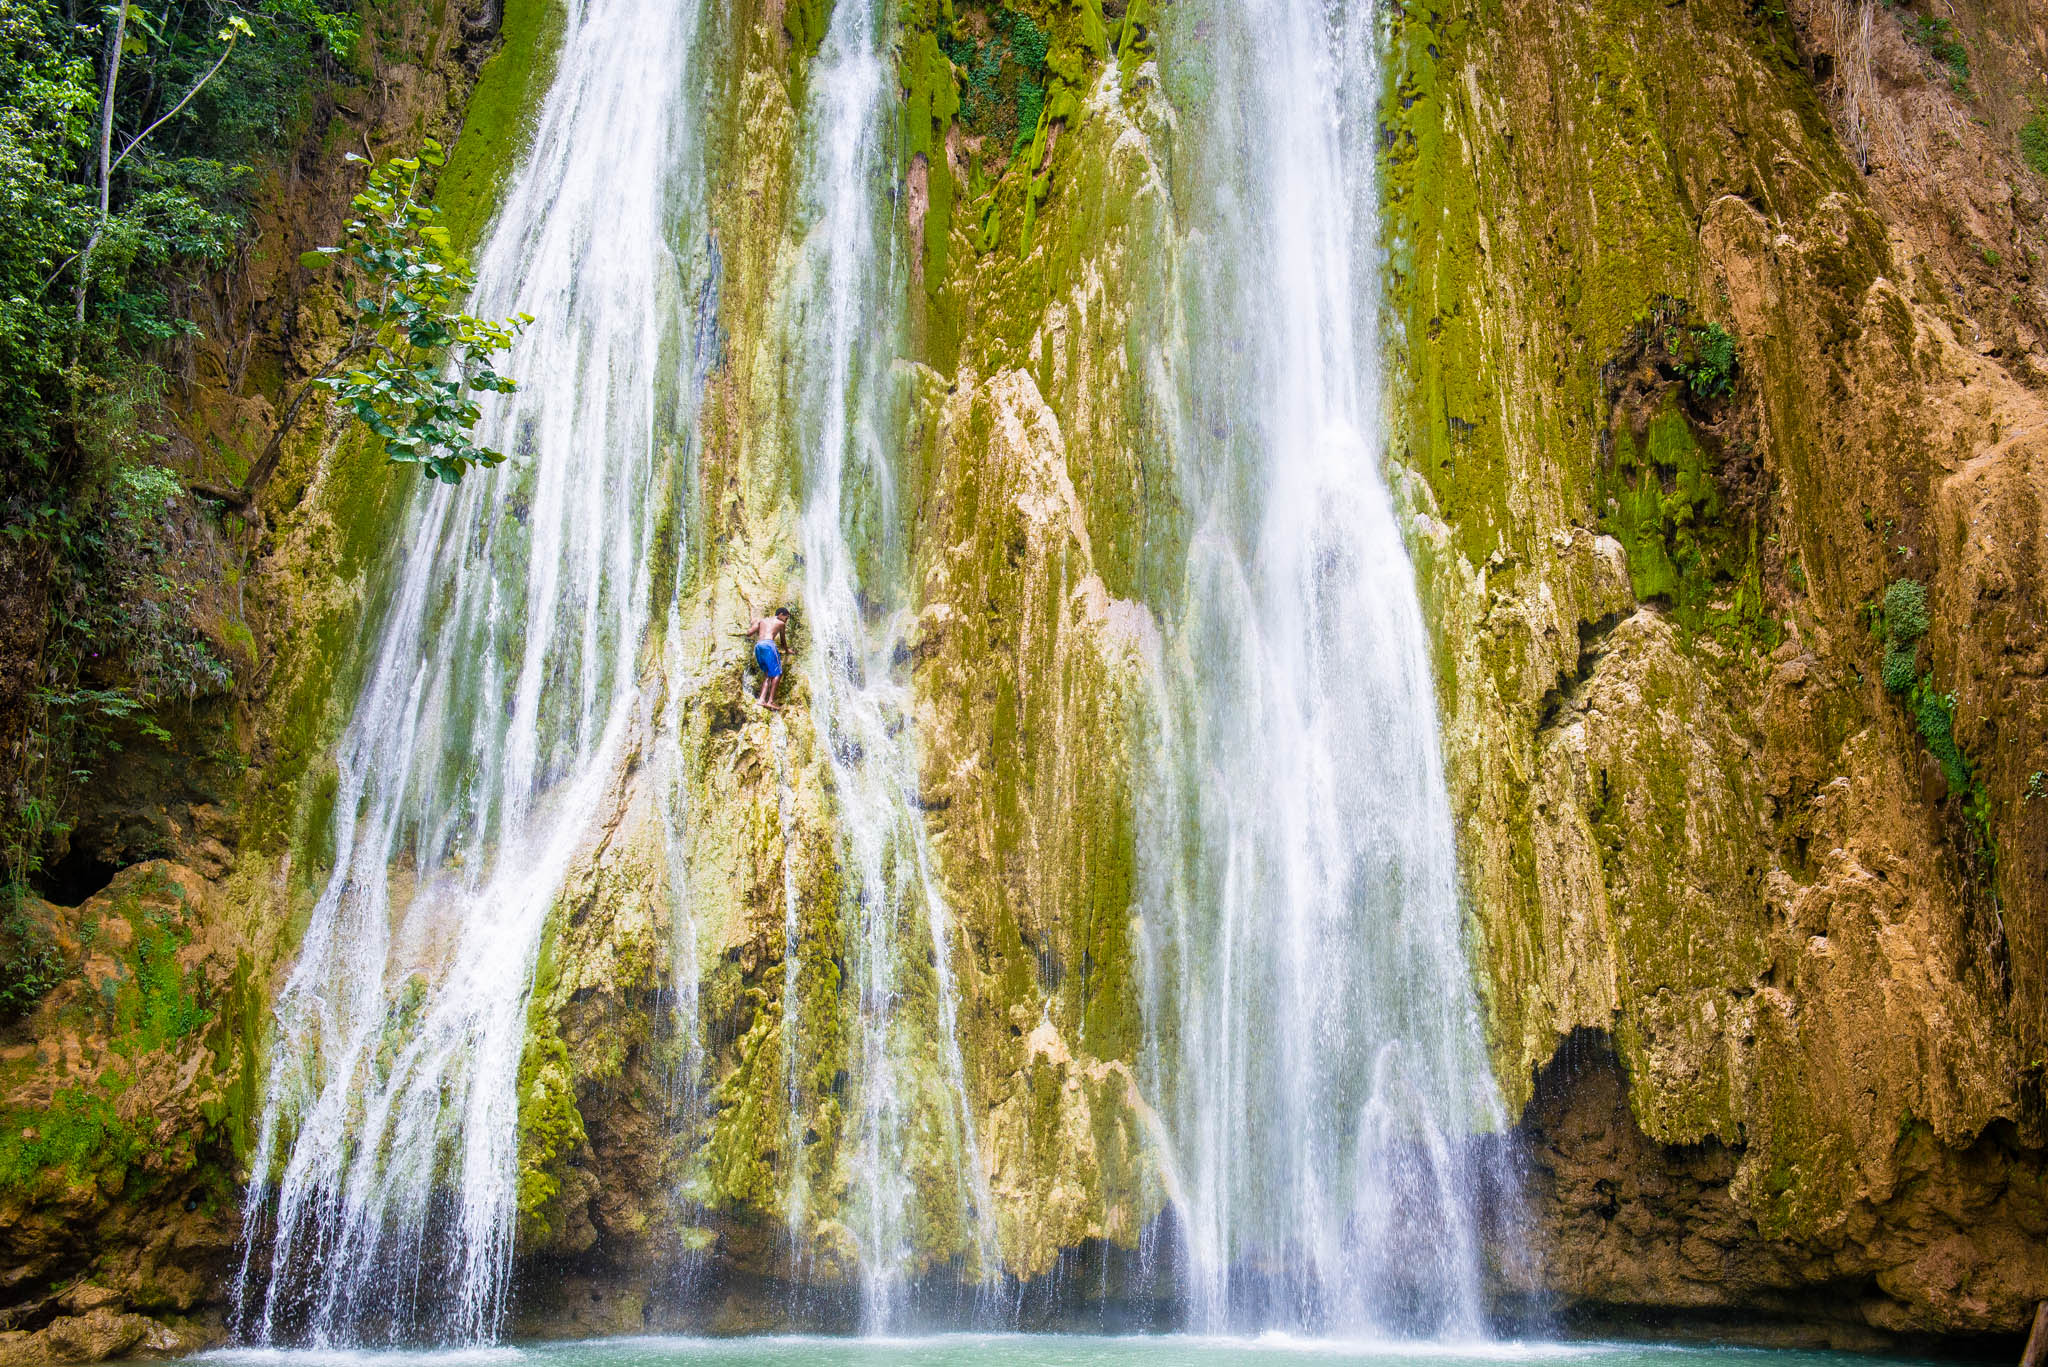 Salto del Limon Waterfall, Samana, Dominican Republic by Patrick Bennett